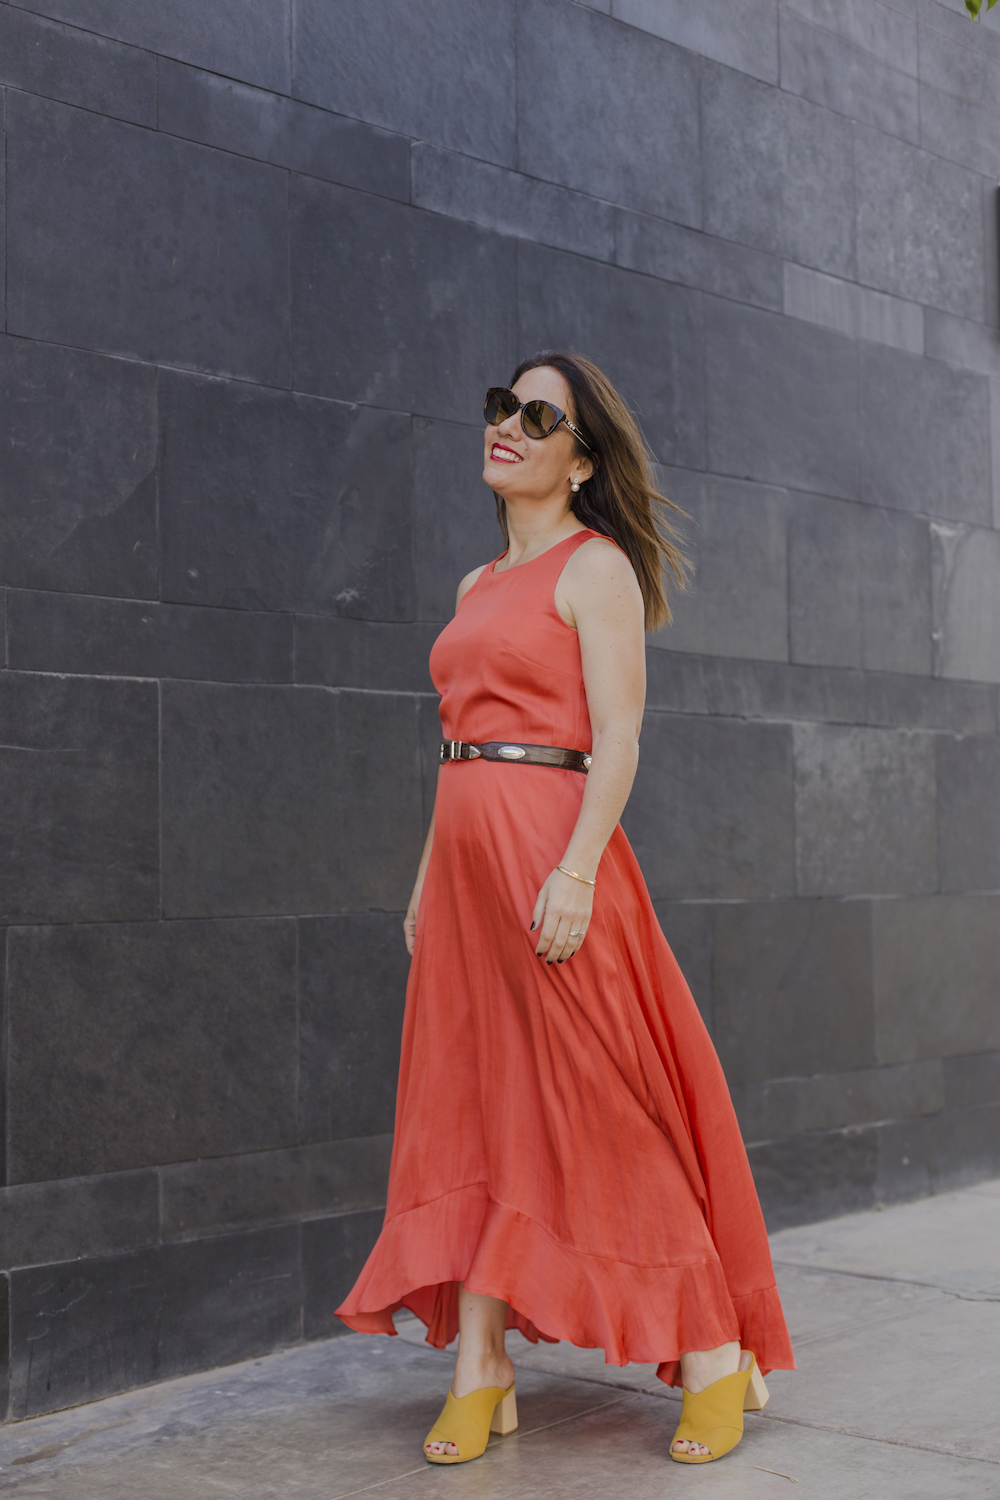 Banana Republic Orange Maxi Dress - La Vida de Serendipity 2